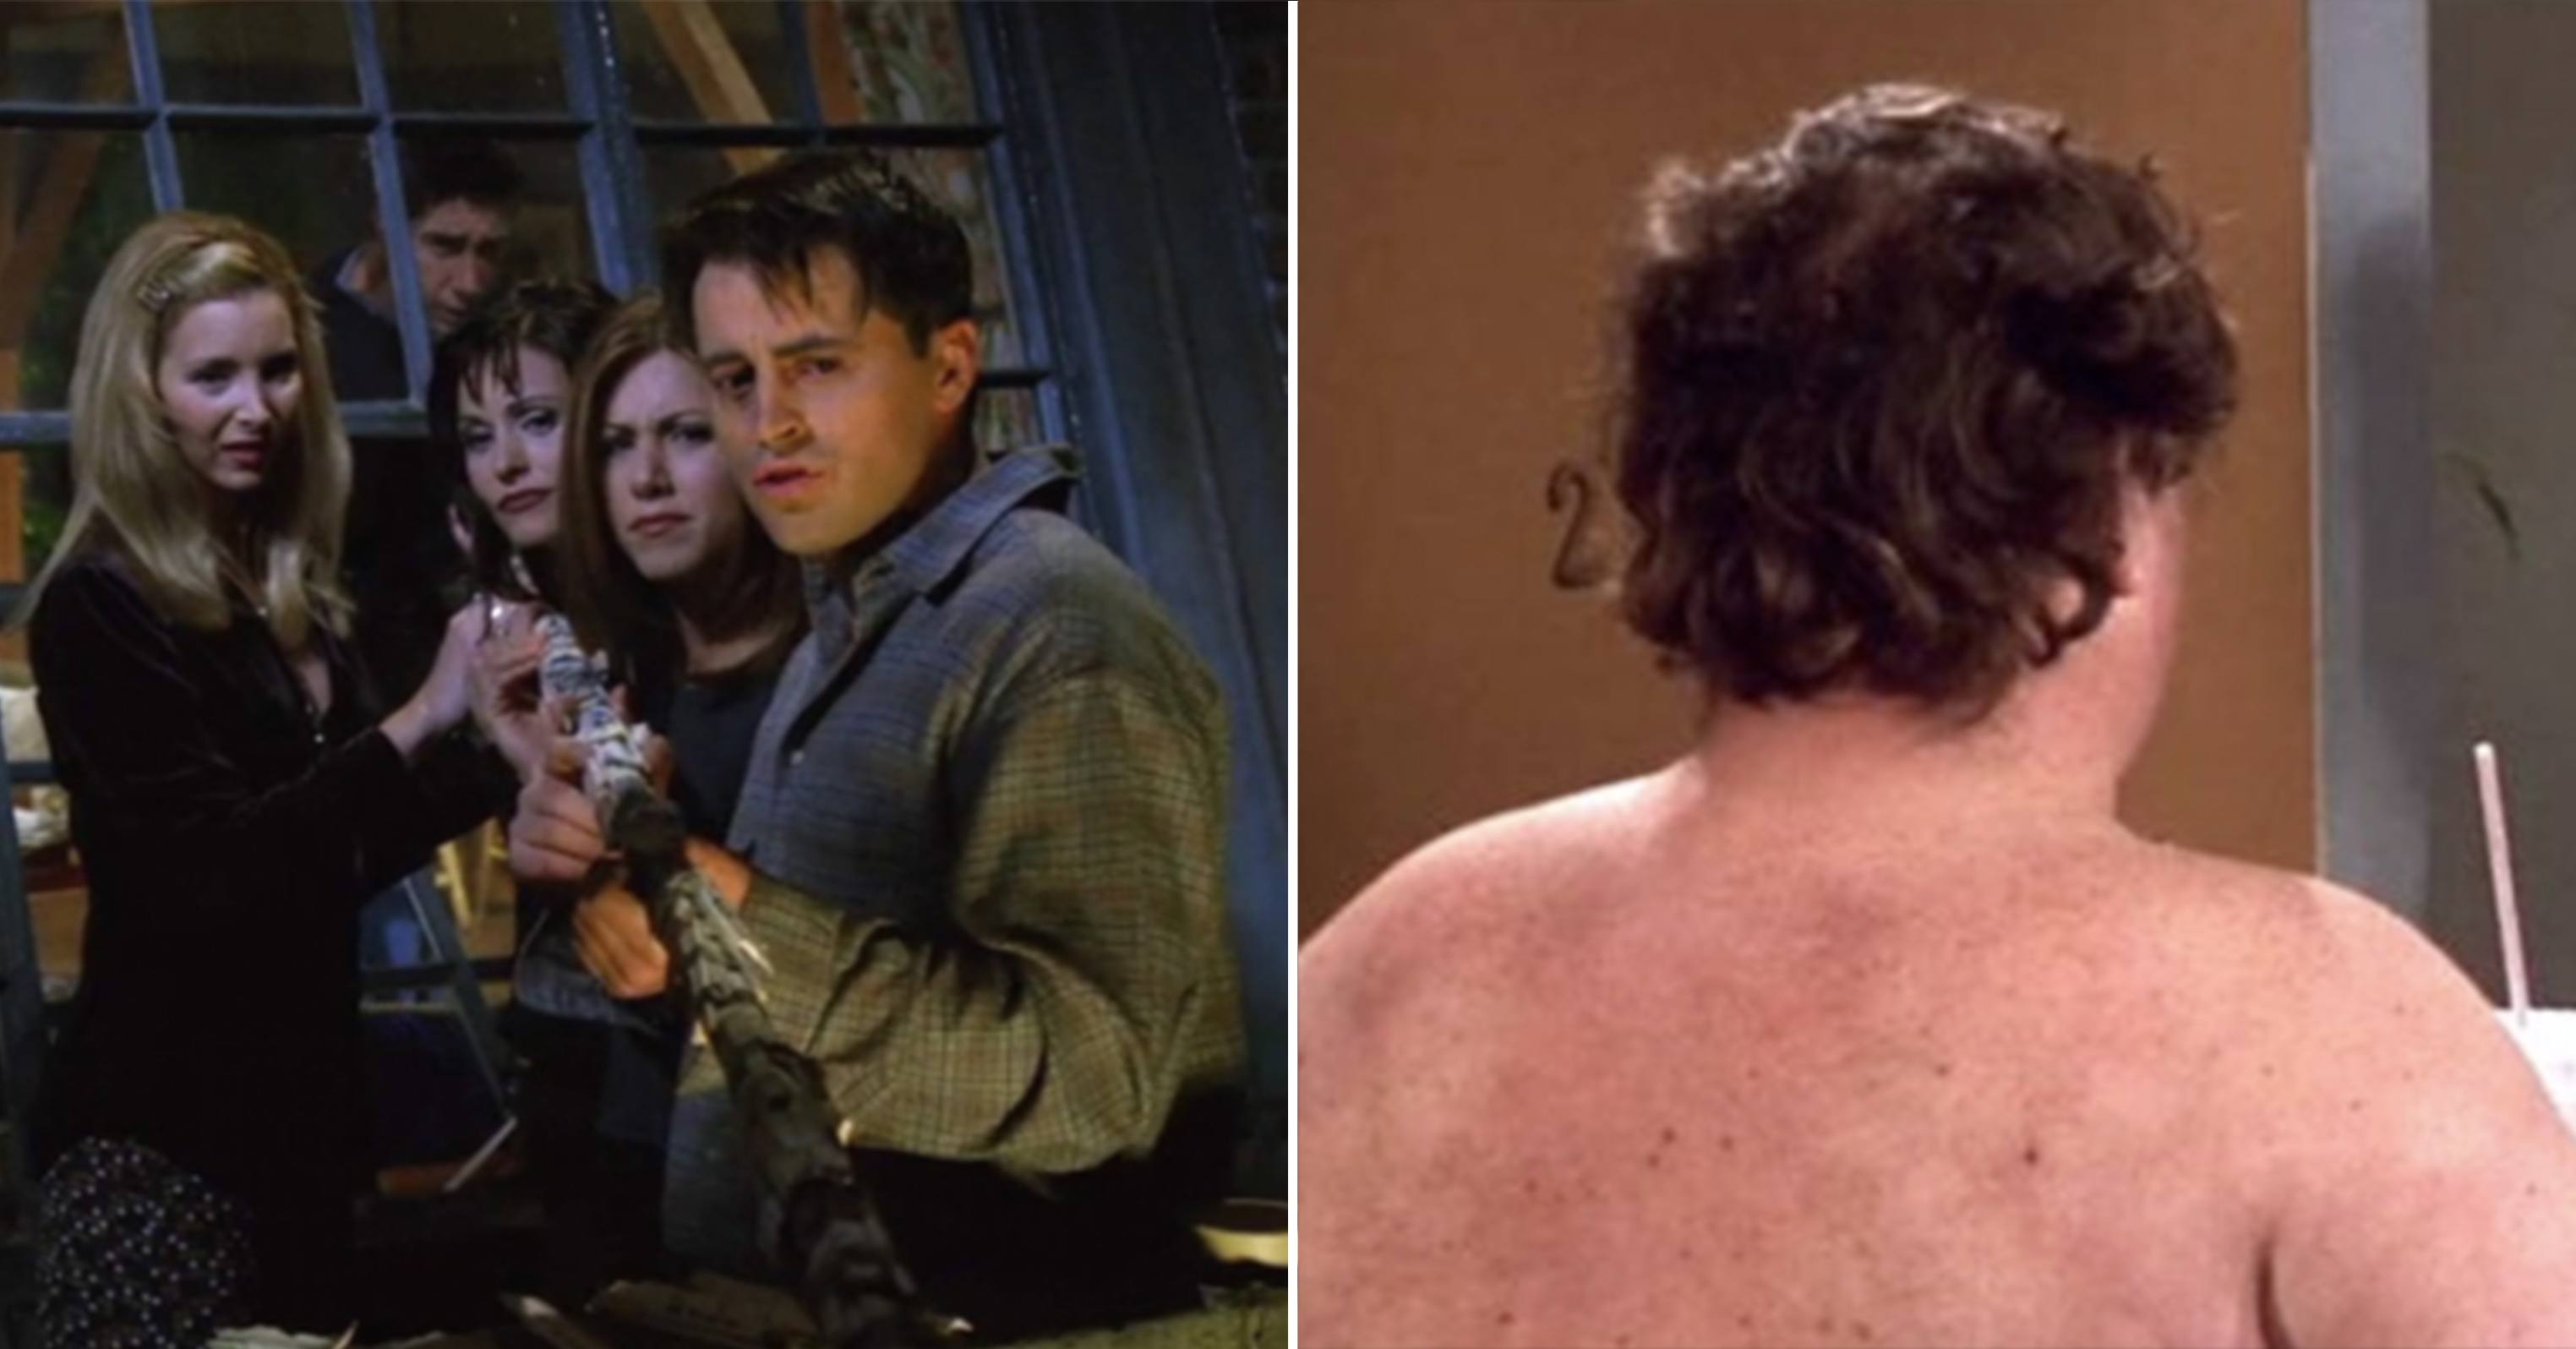 Watch The Ugly Naked Guy from Friends has finally been revealed video